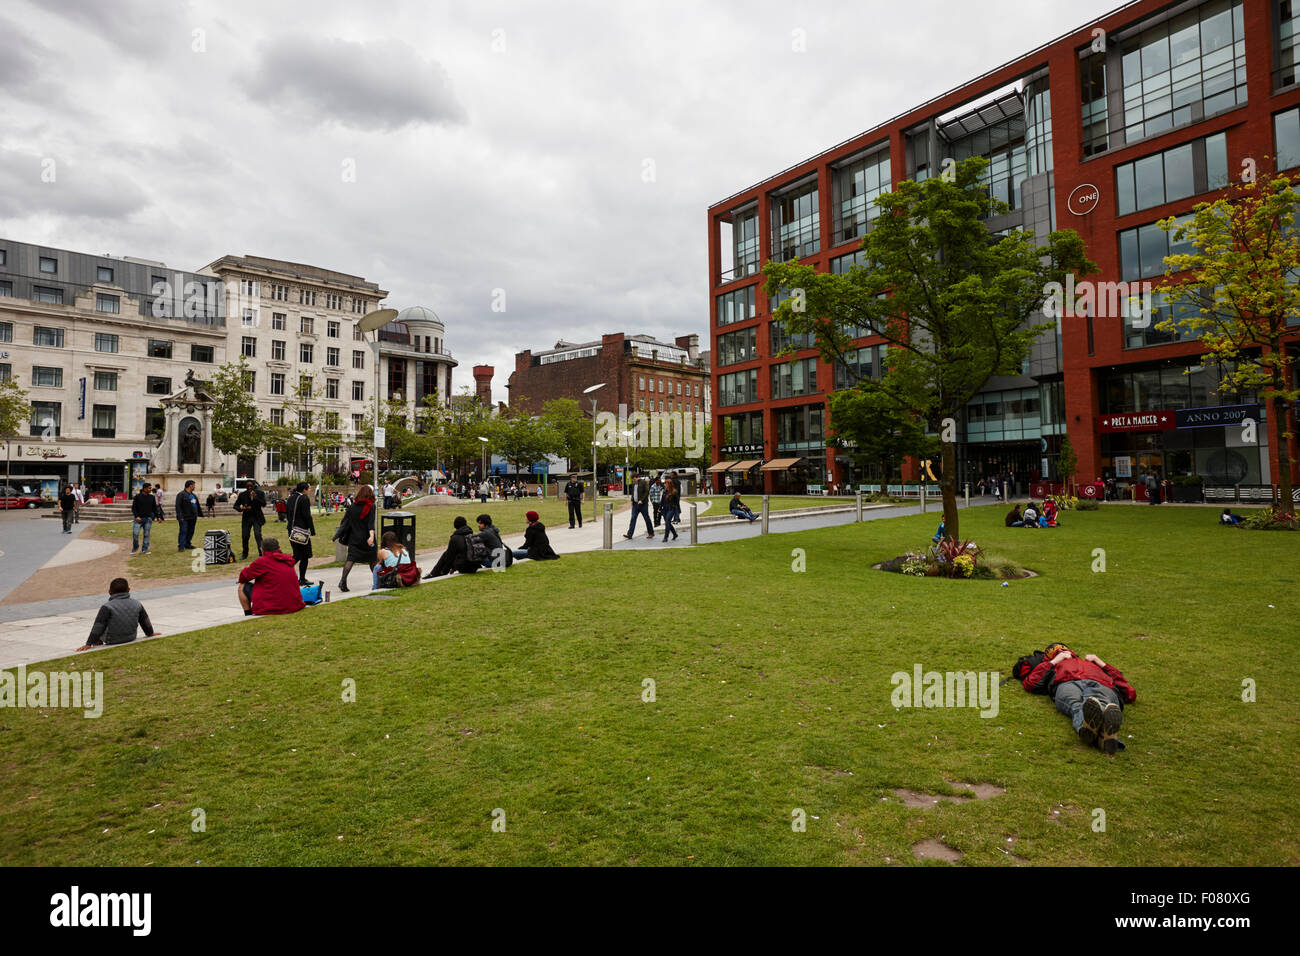 Piccadilly gardens Manchester city centre uk - Stock Image